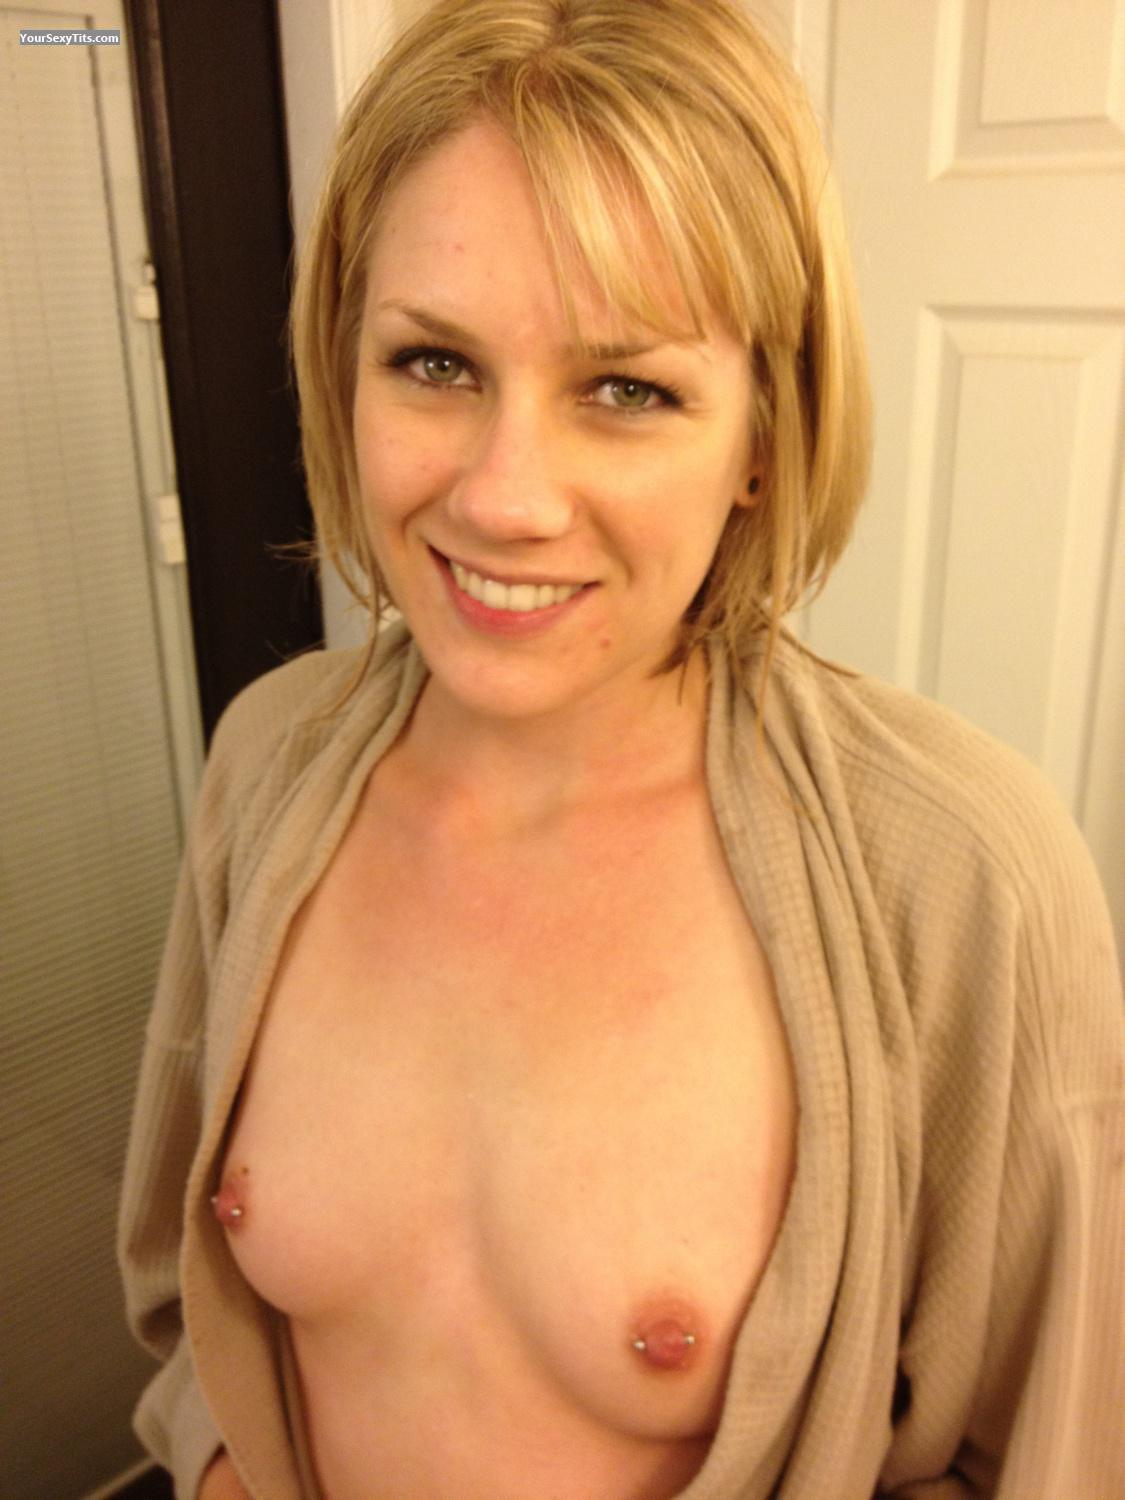 Tit Flash: Small Tits By IPhone - Topless Voyeurvirgin from United StatesPierced Nipples